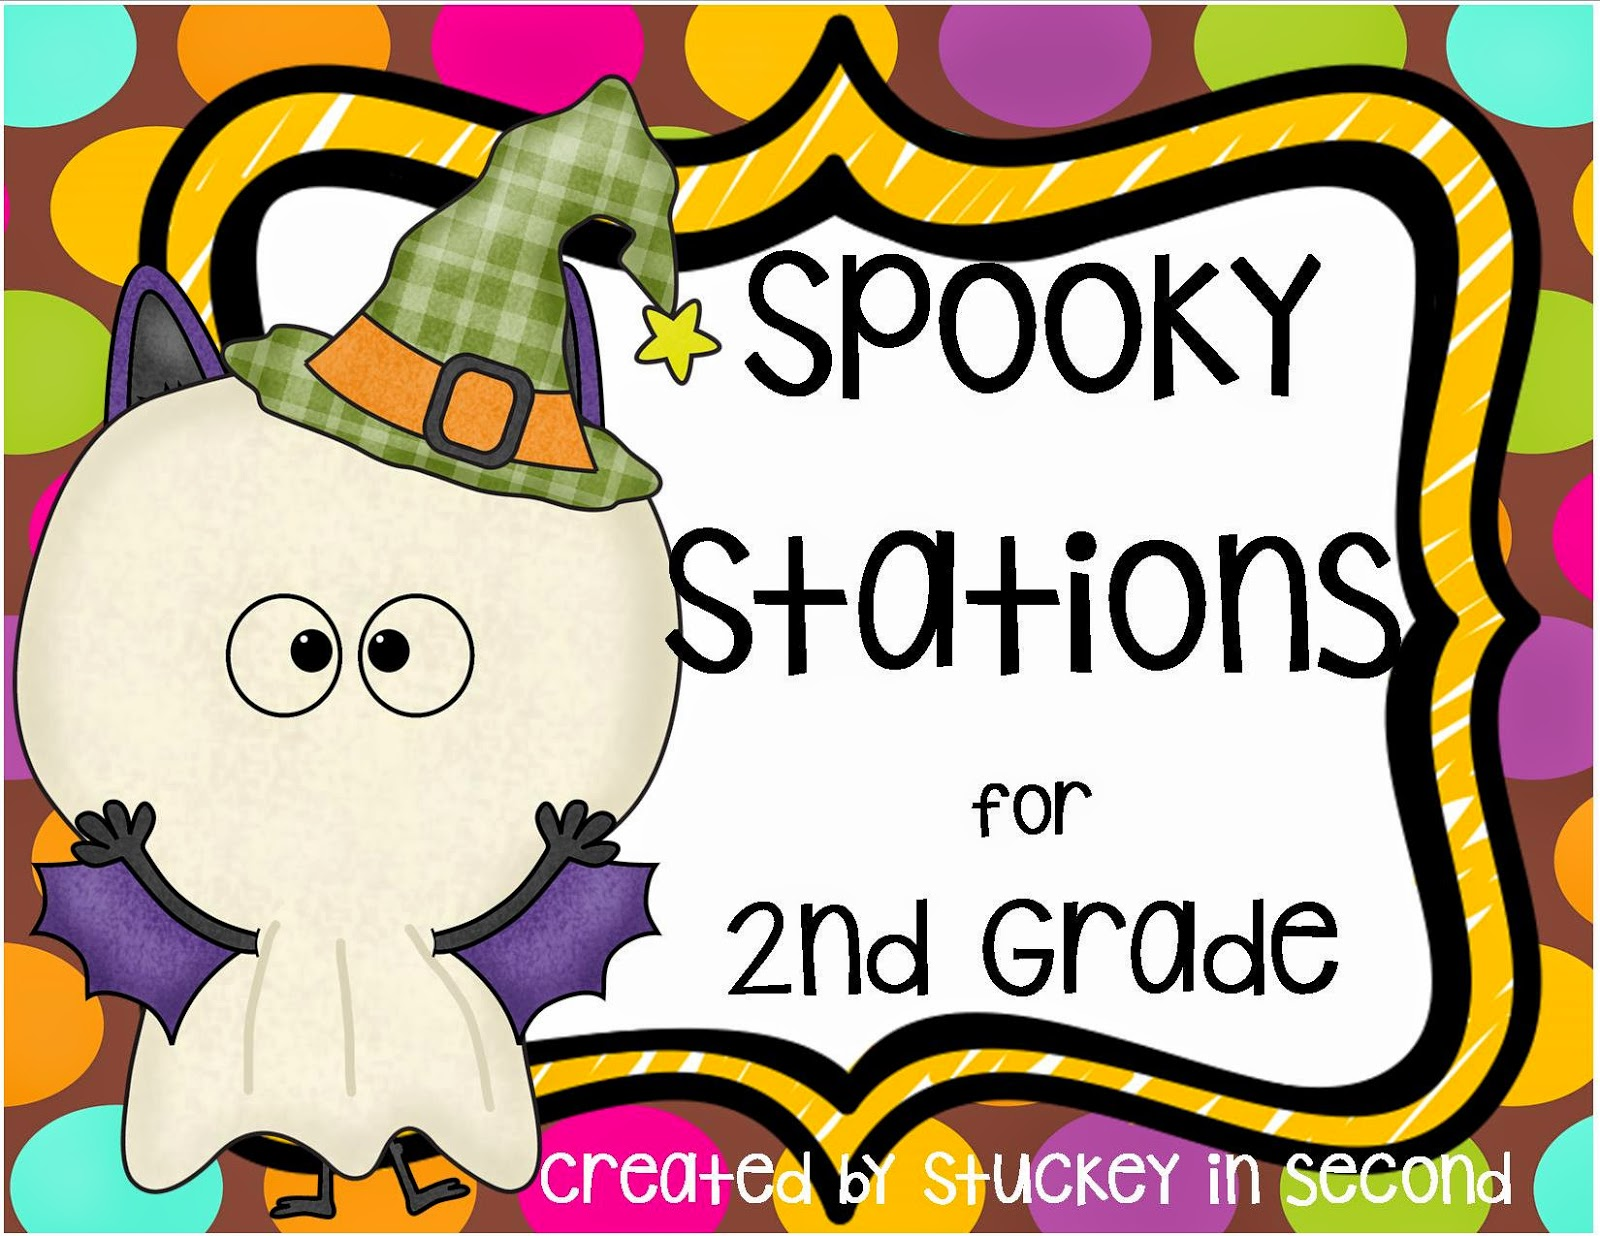 http://www.teacherspayteachers.com/Product/Spooky-Stations-for-2nd-Grade-6-Math-Centers-1450439